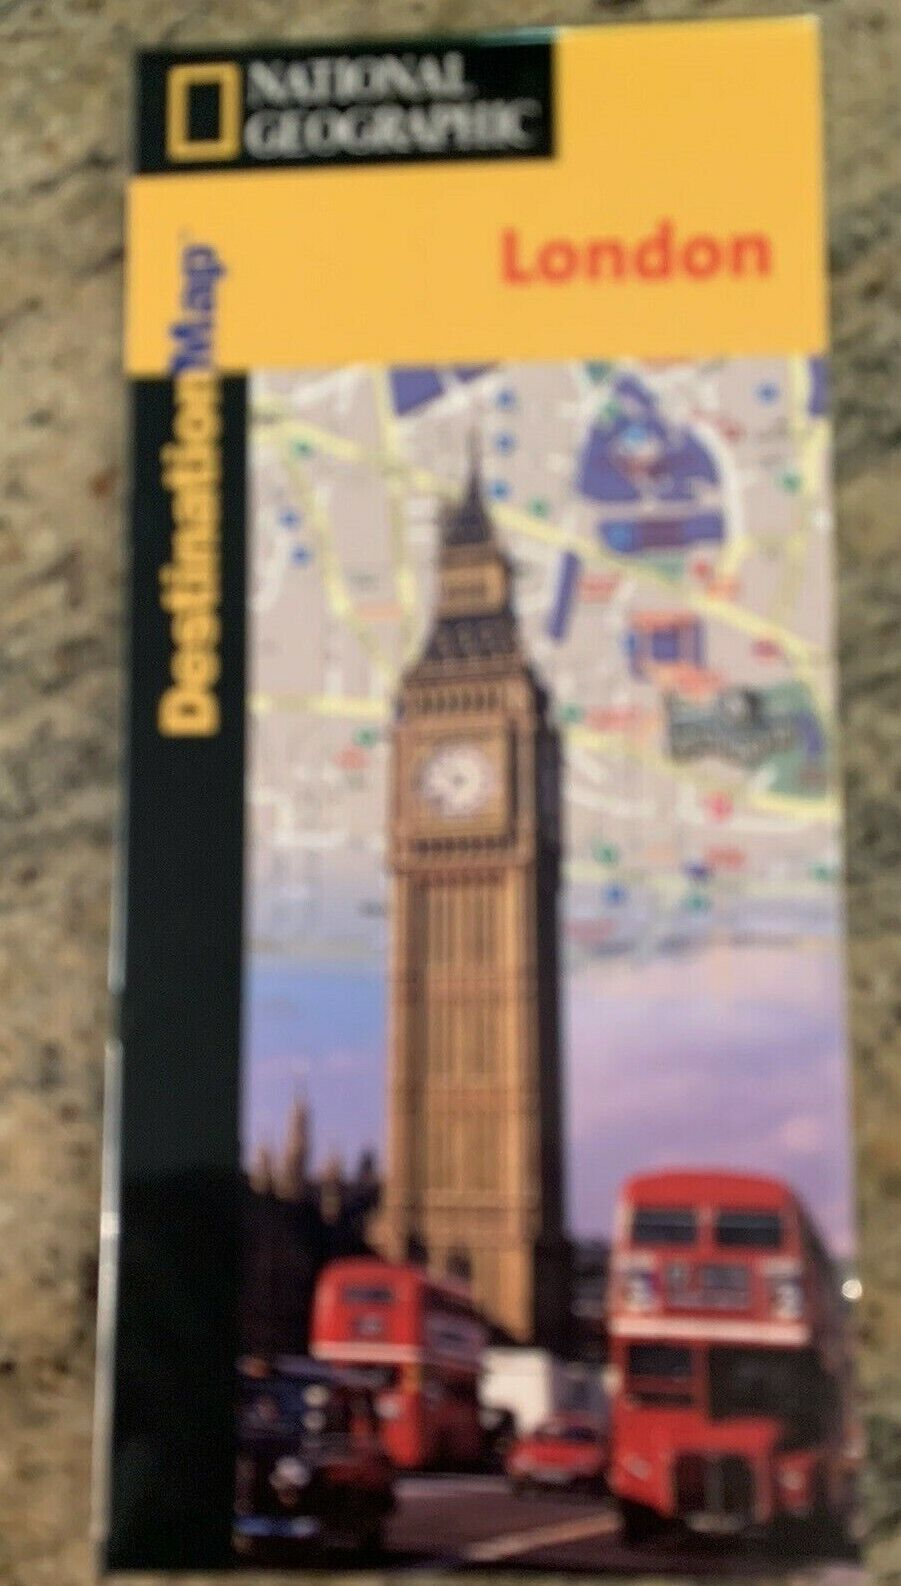 Street Map Of London, England, By National Geographic Destination Maps - $3.50